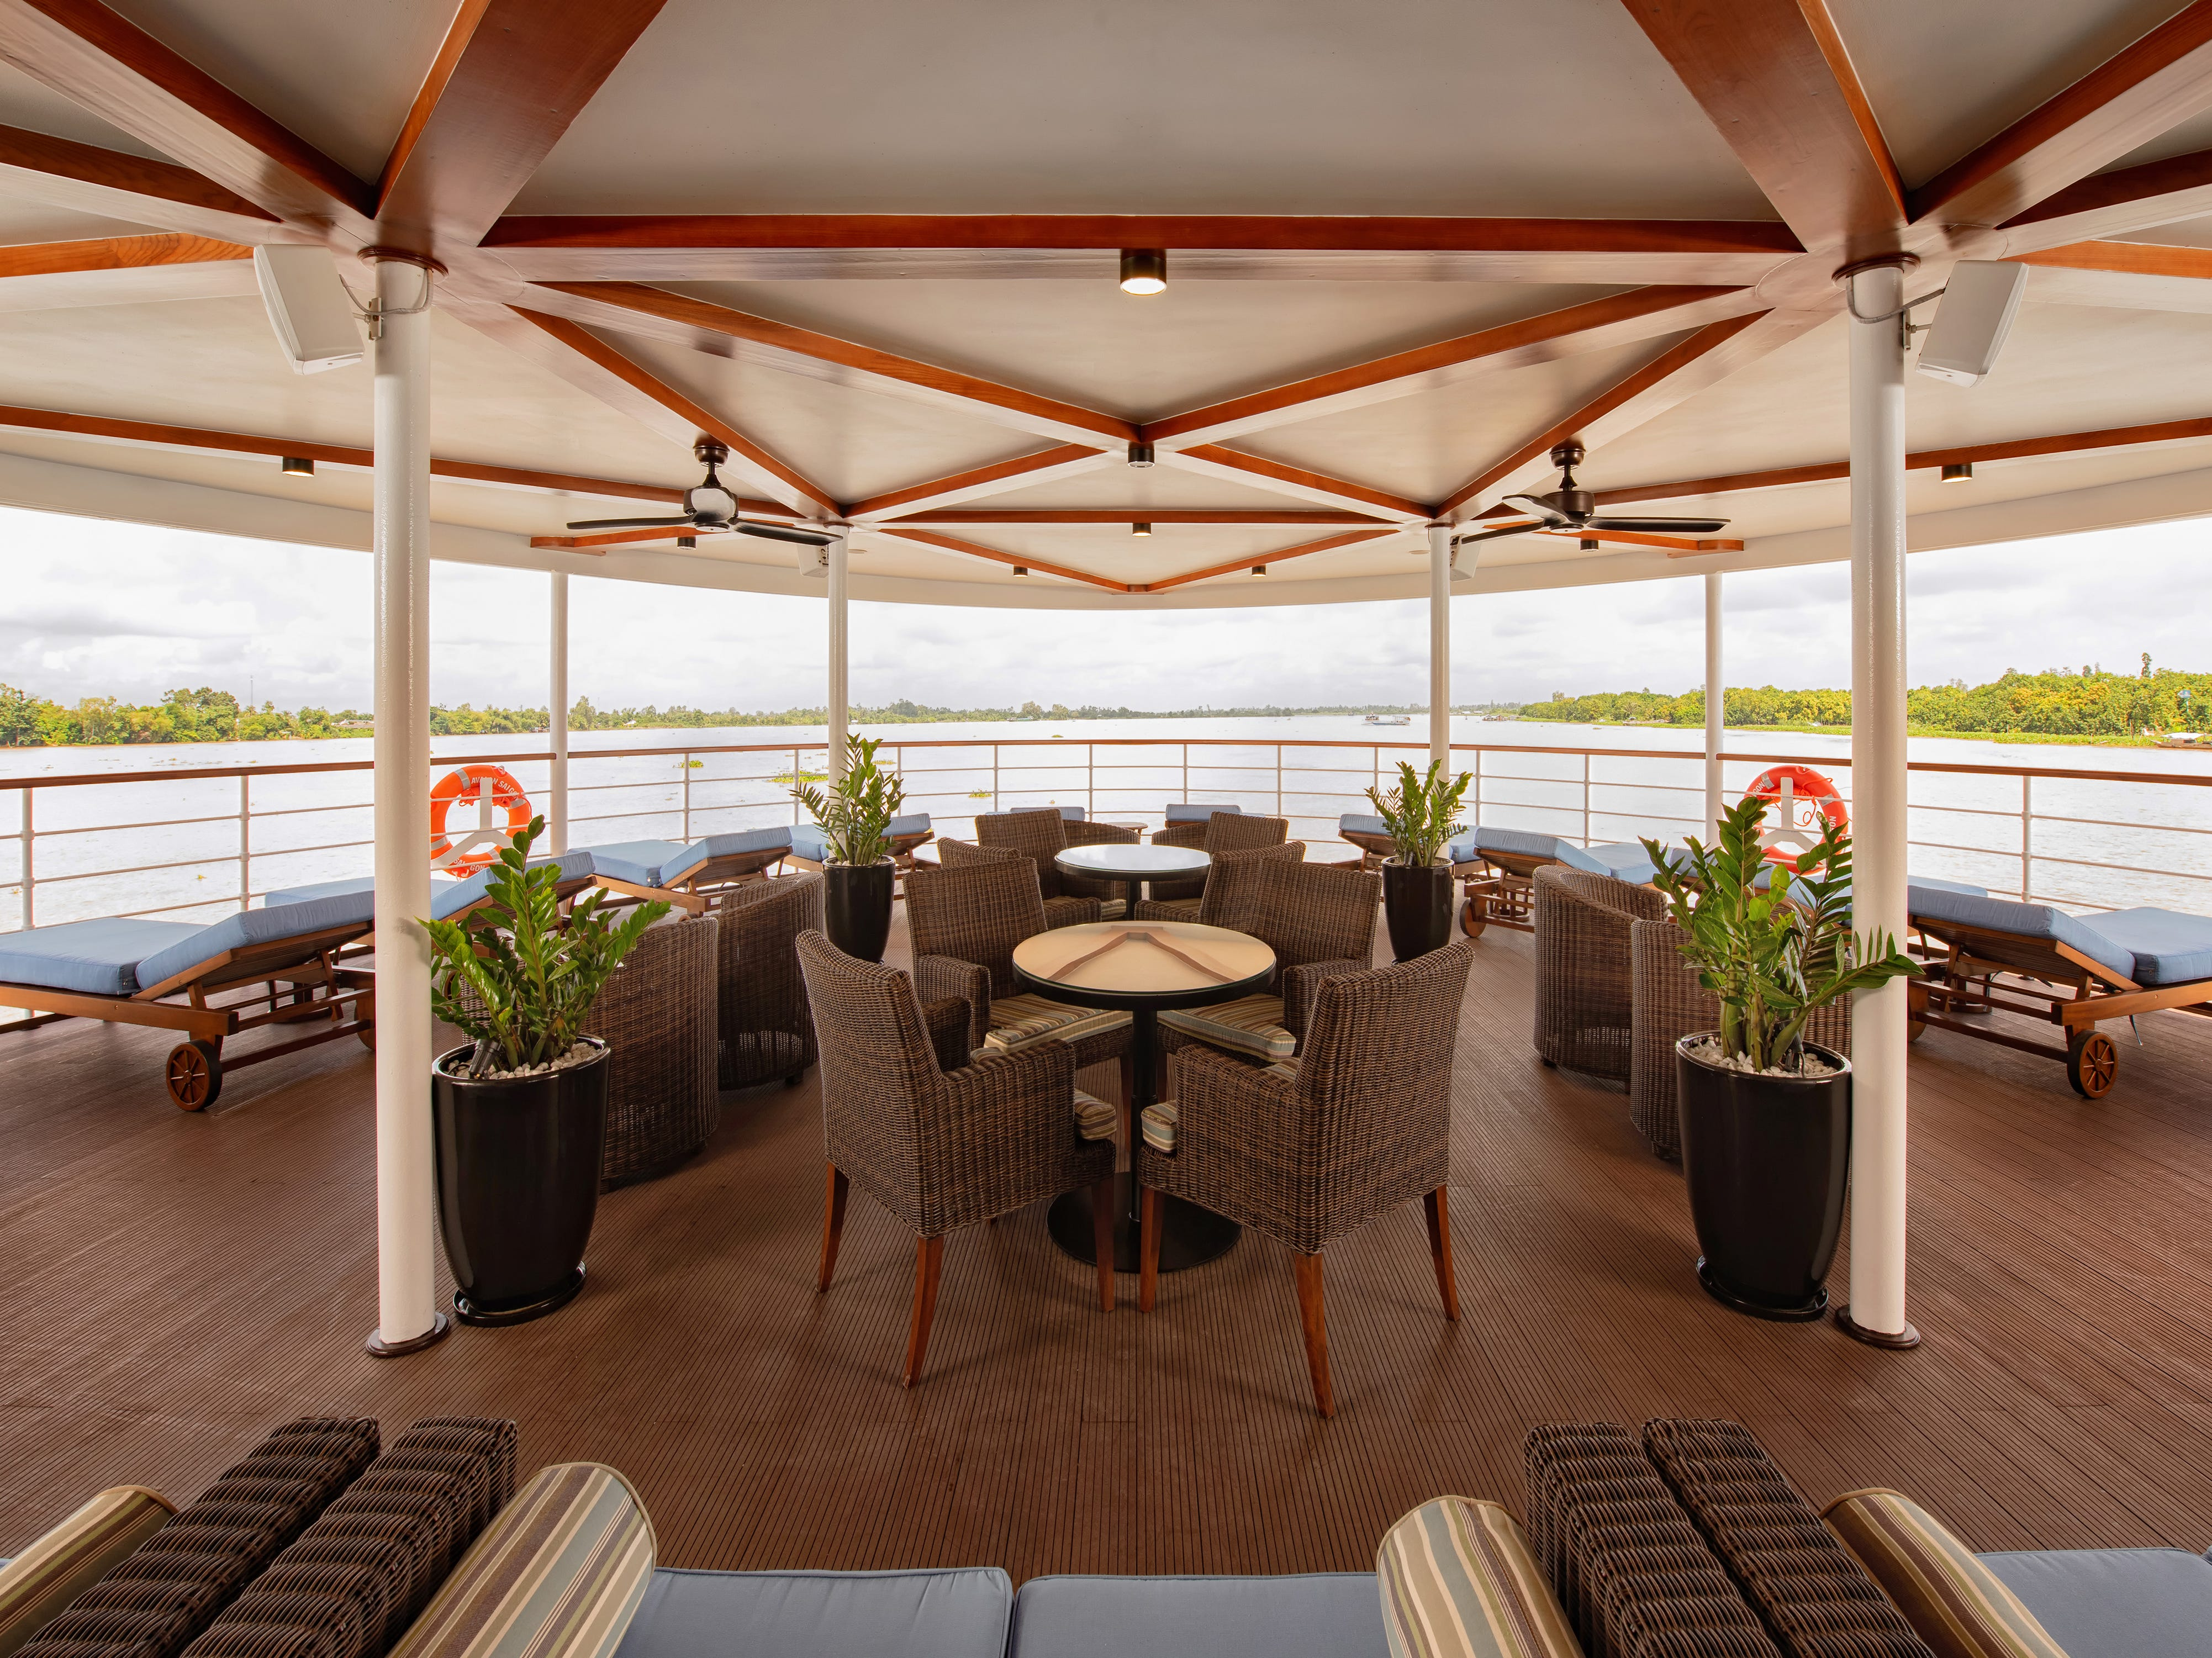 Avalon Saigon features a comfortable, covered outdoor seating area at the front of the vessel.